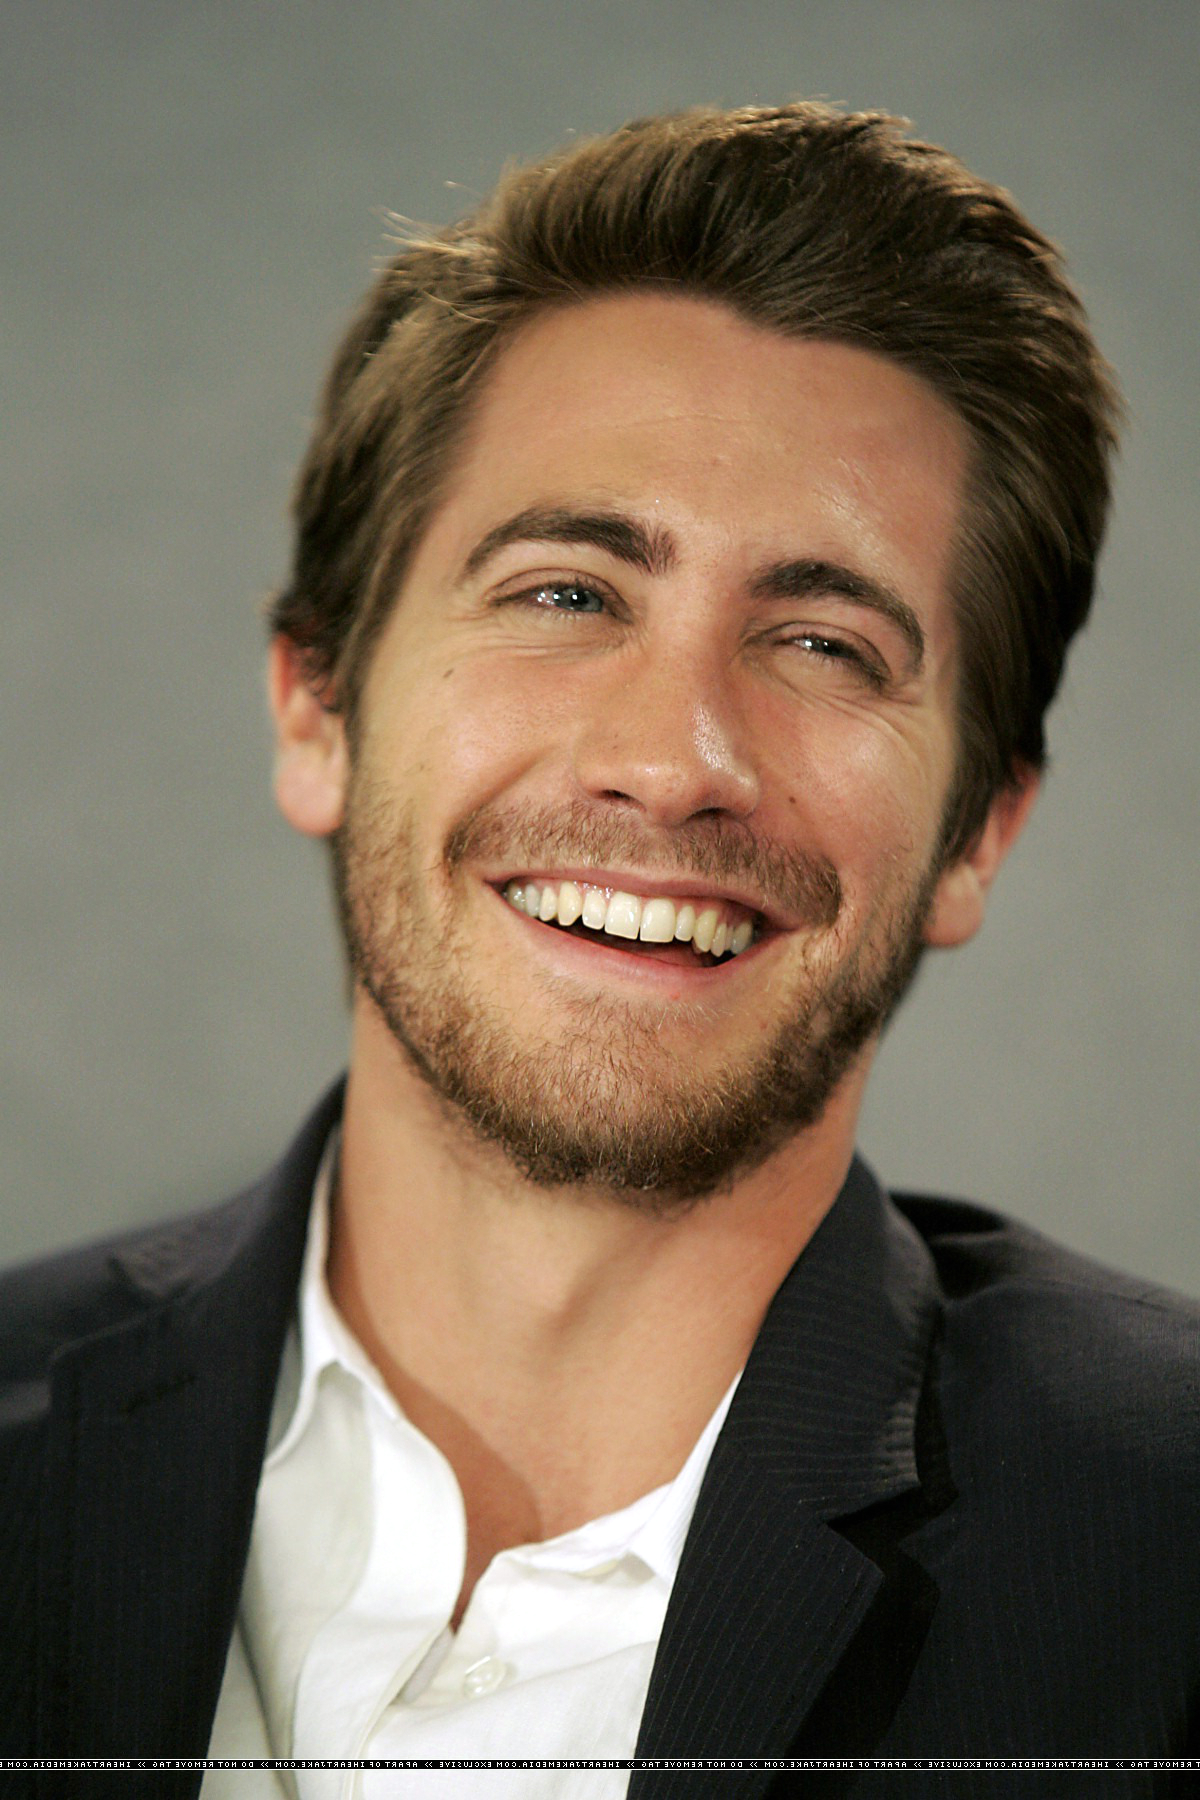 Cars The Movie Wallpapers Free Jake Gyllenhaal Wallpapers Hd Wallpapers